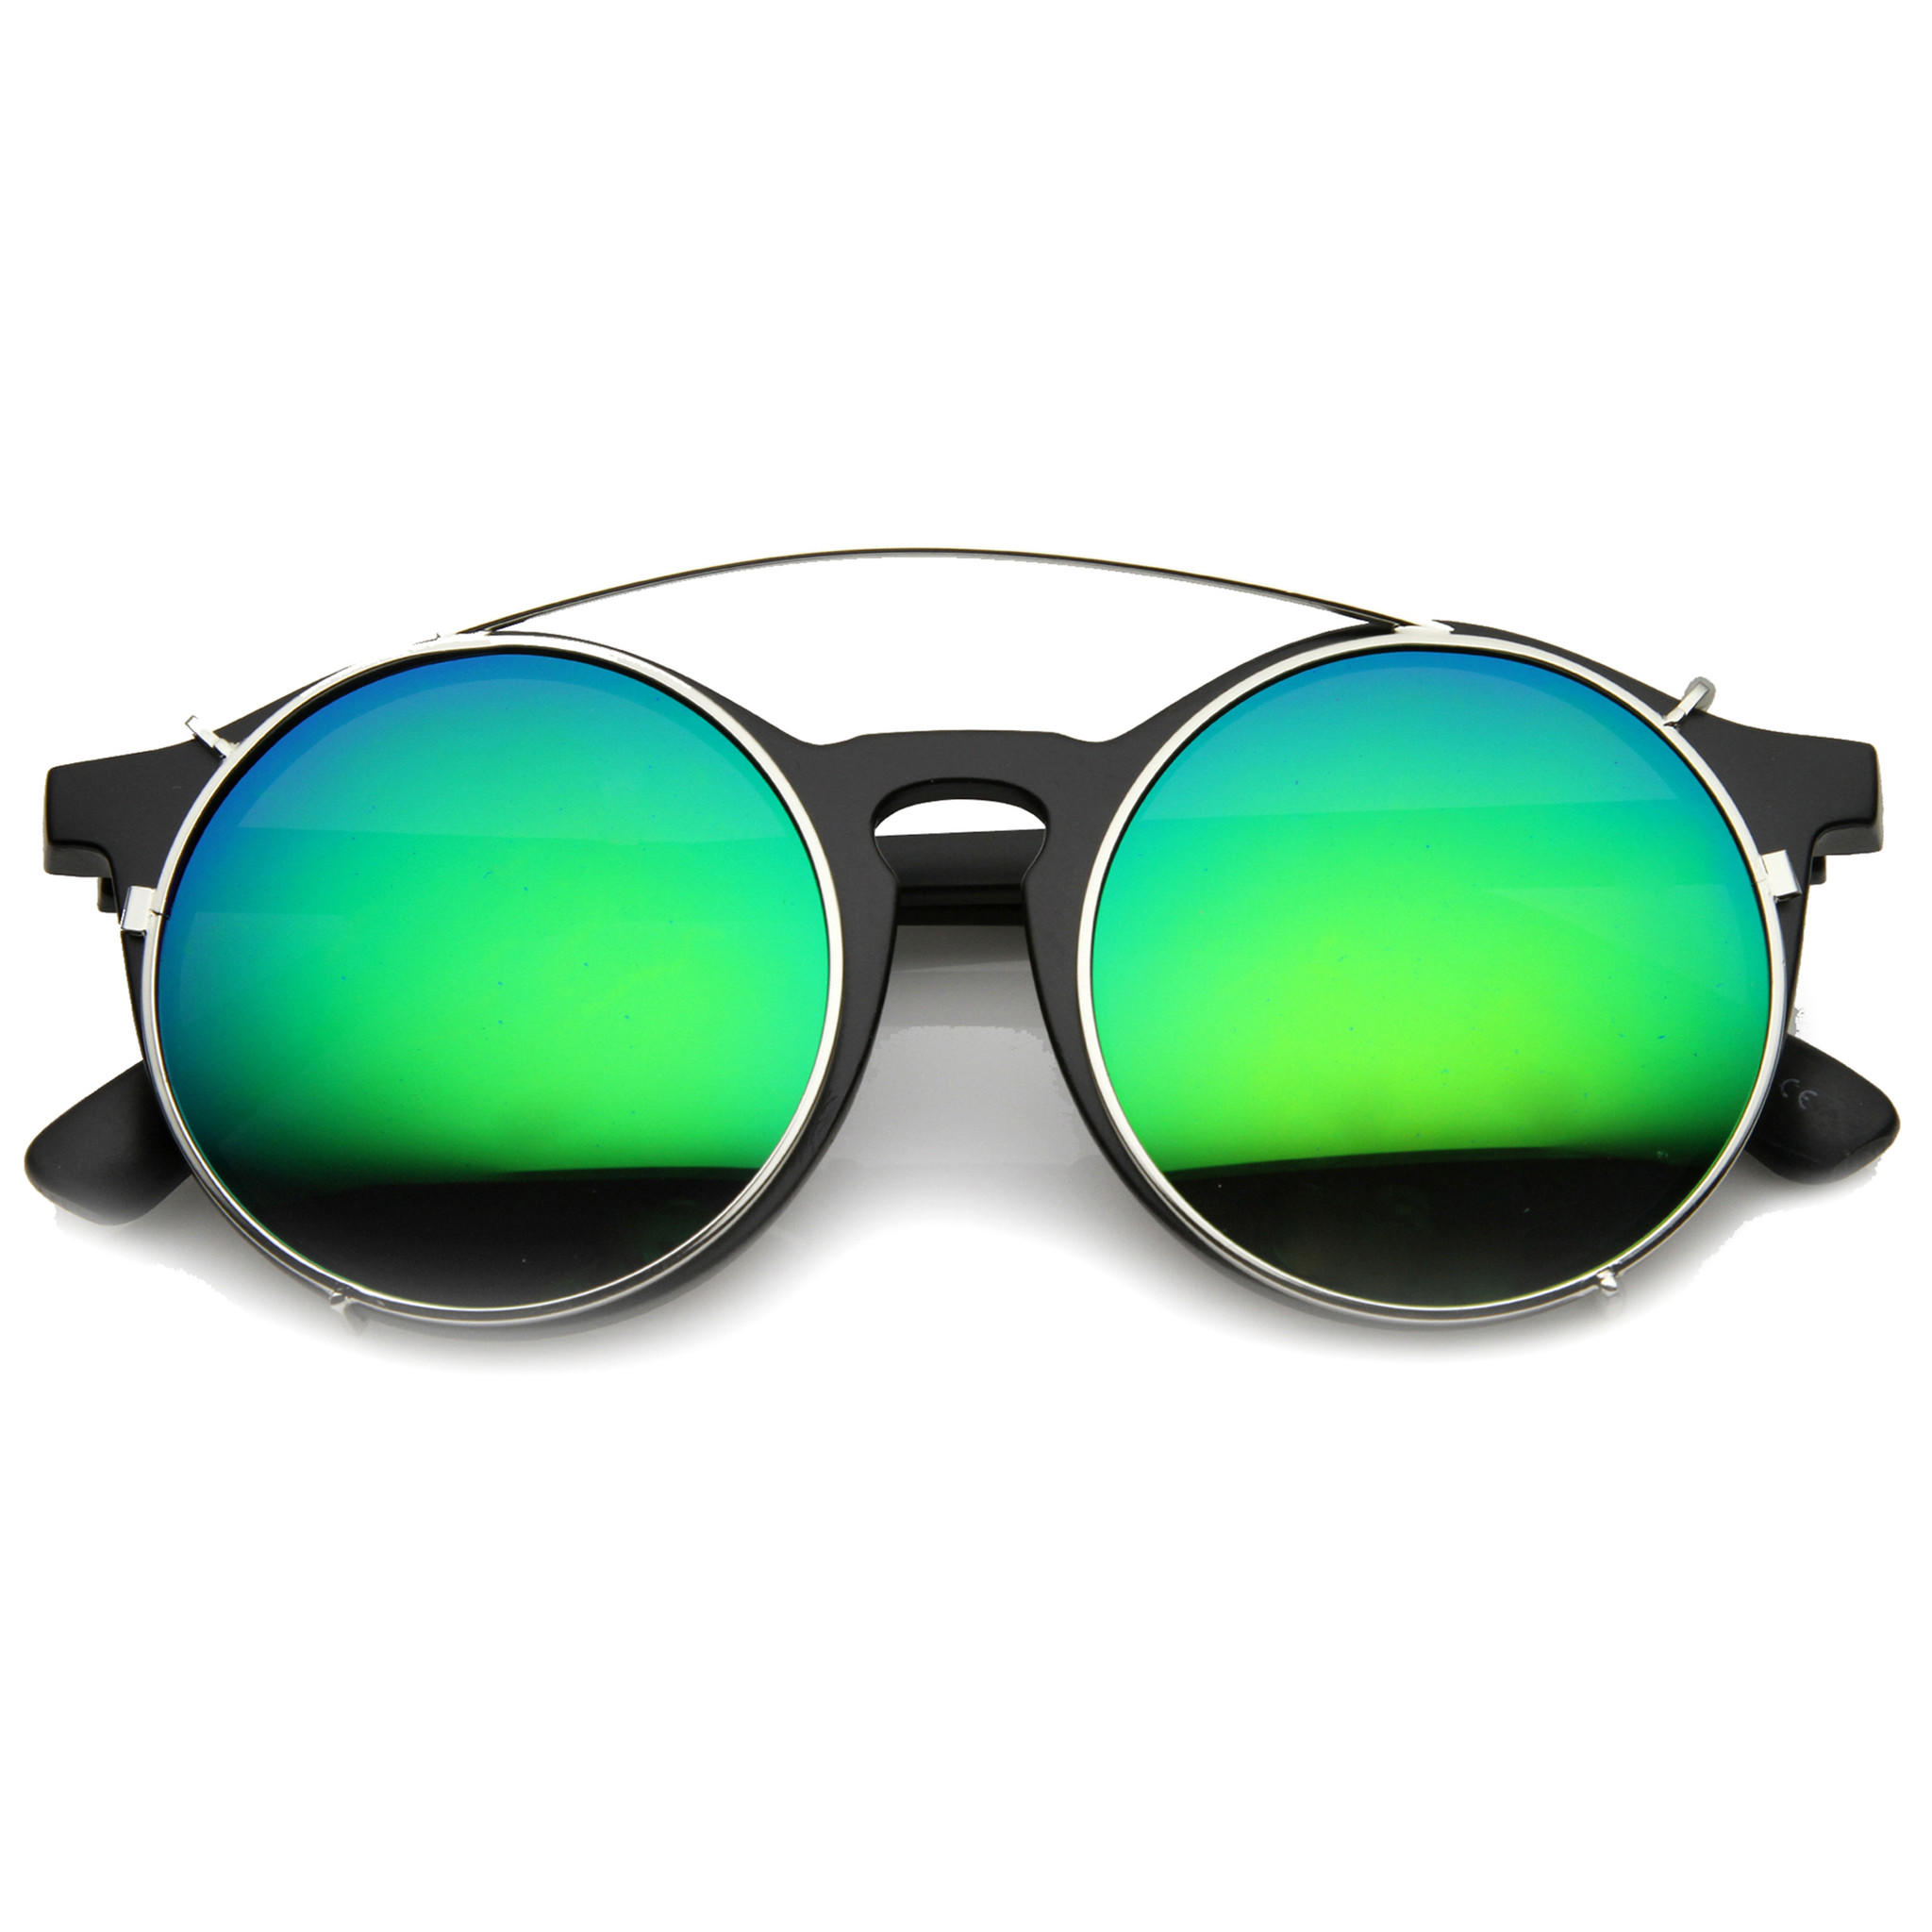 Image of Oversize Round Flash Mirrored Clip On Lens Sunglasses 9793